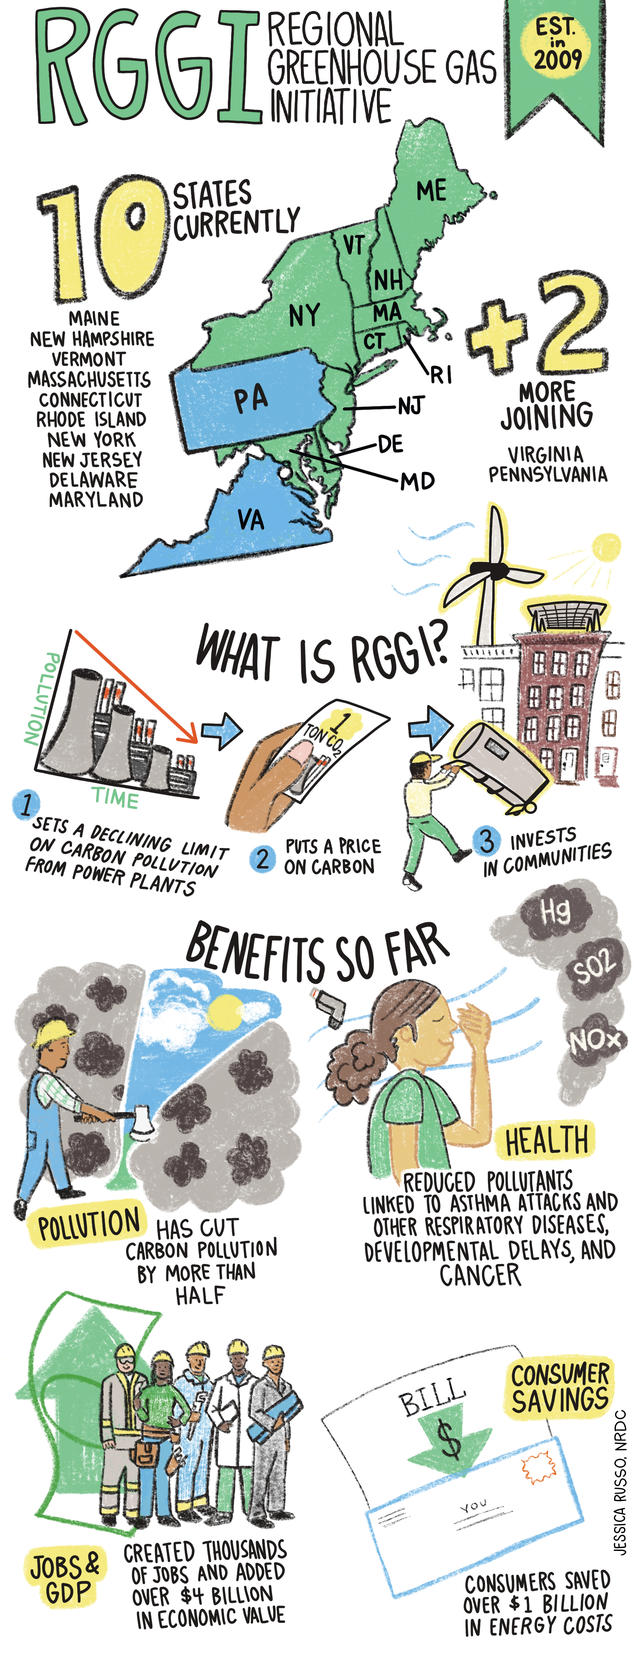 Infographic: How RGGI works and the benefits it provides